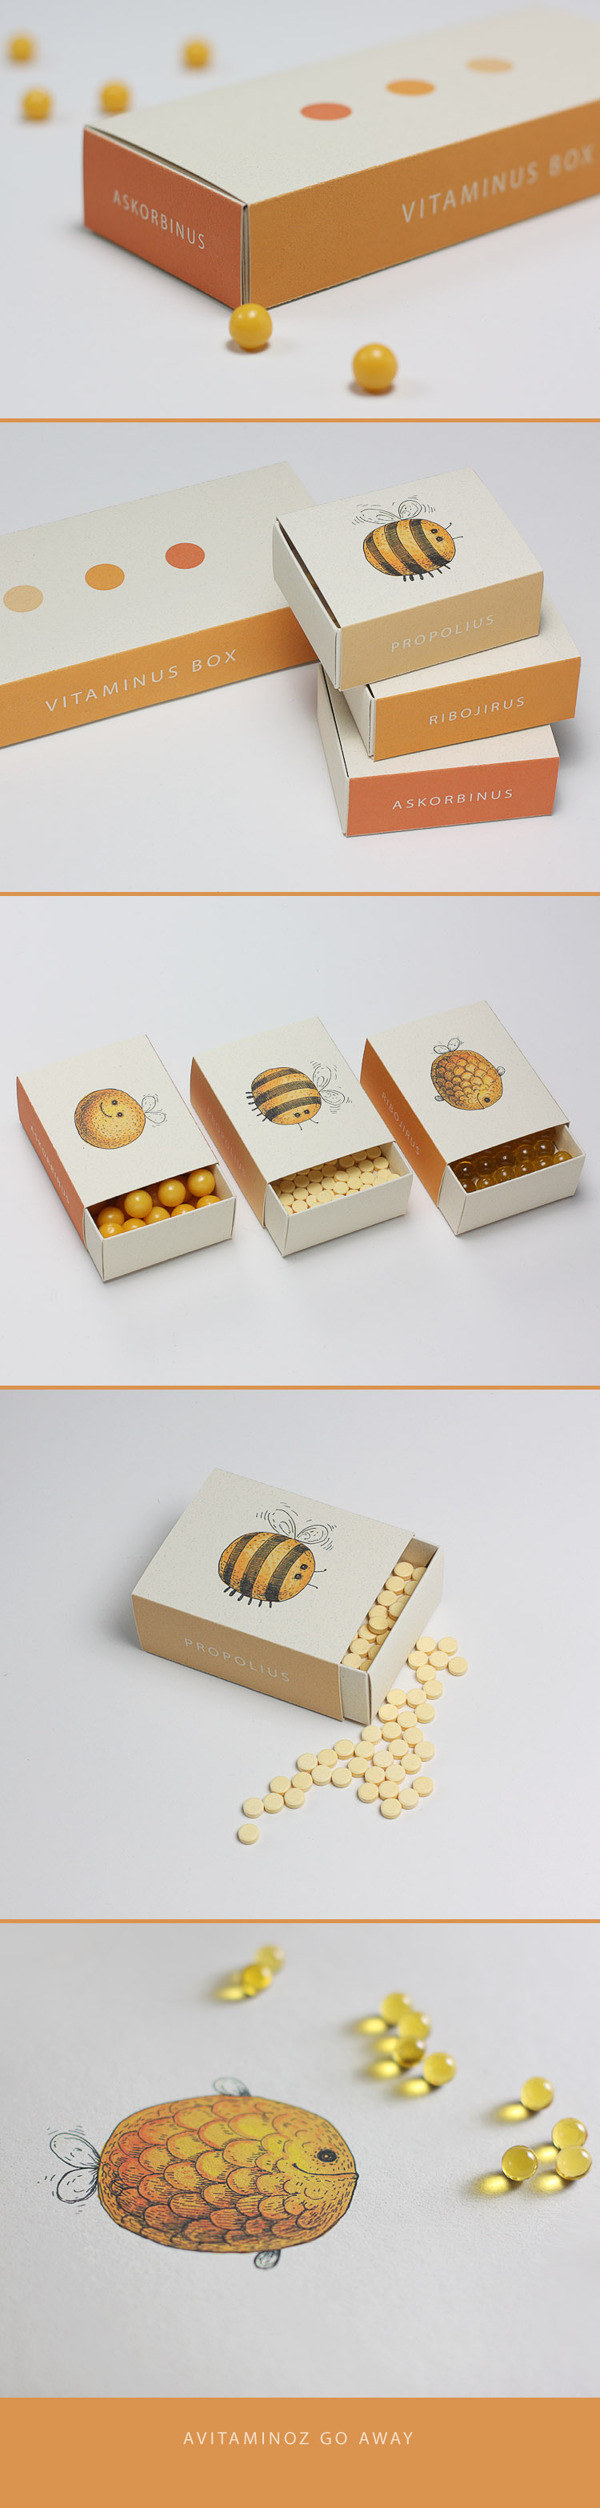 Top 30 Most Clever Packaging Designs Near To Perfection-12